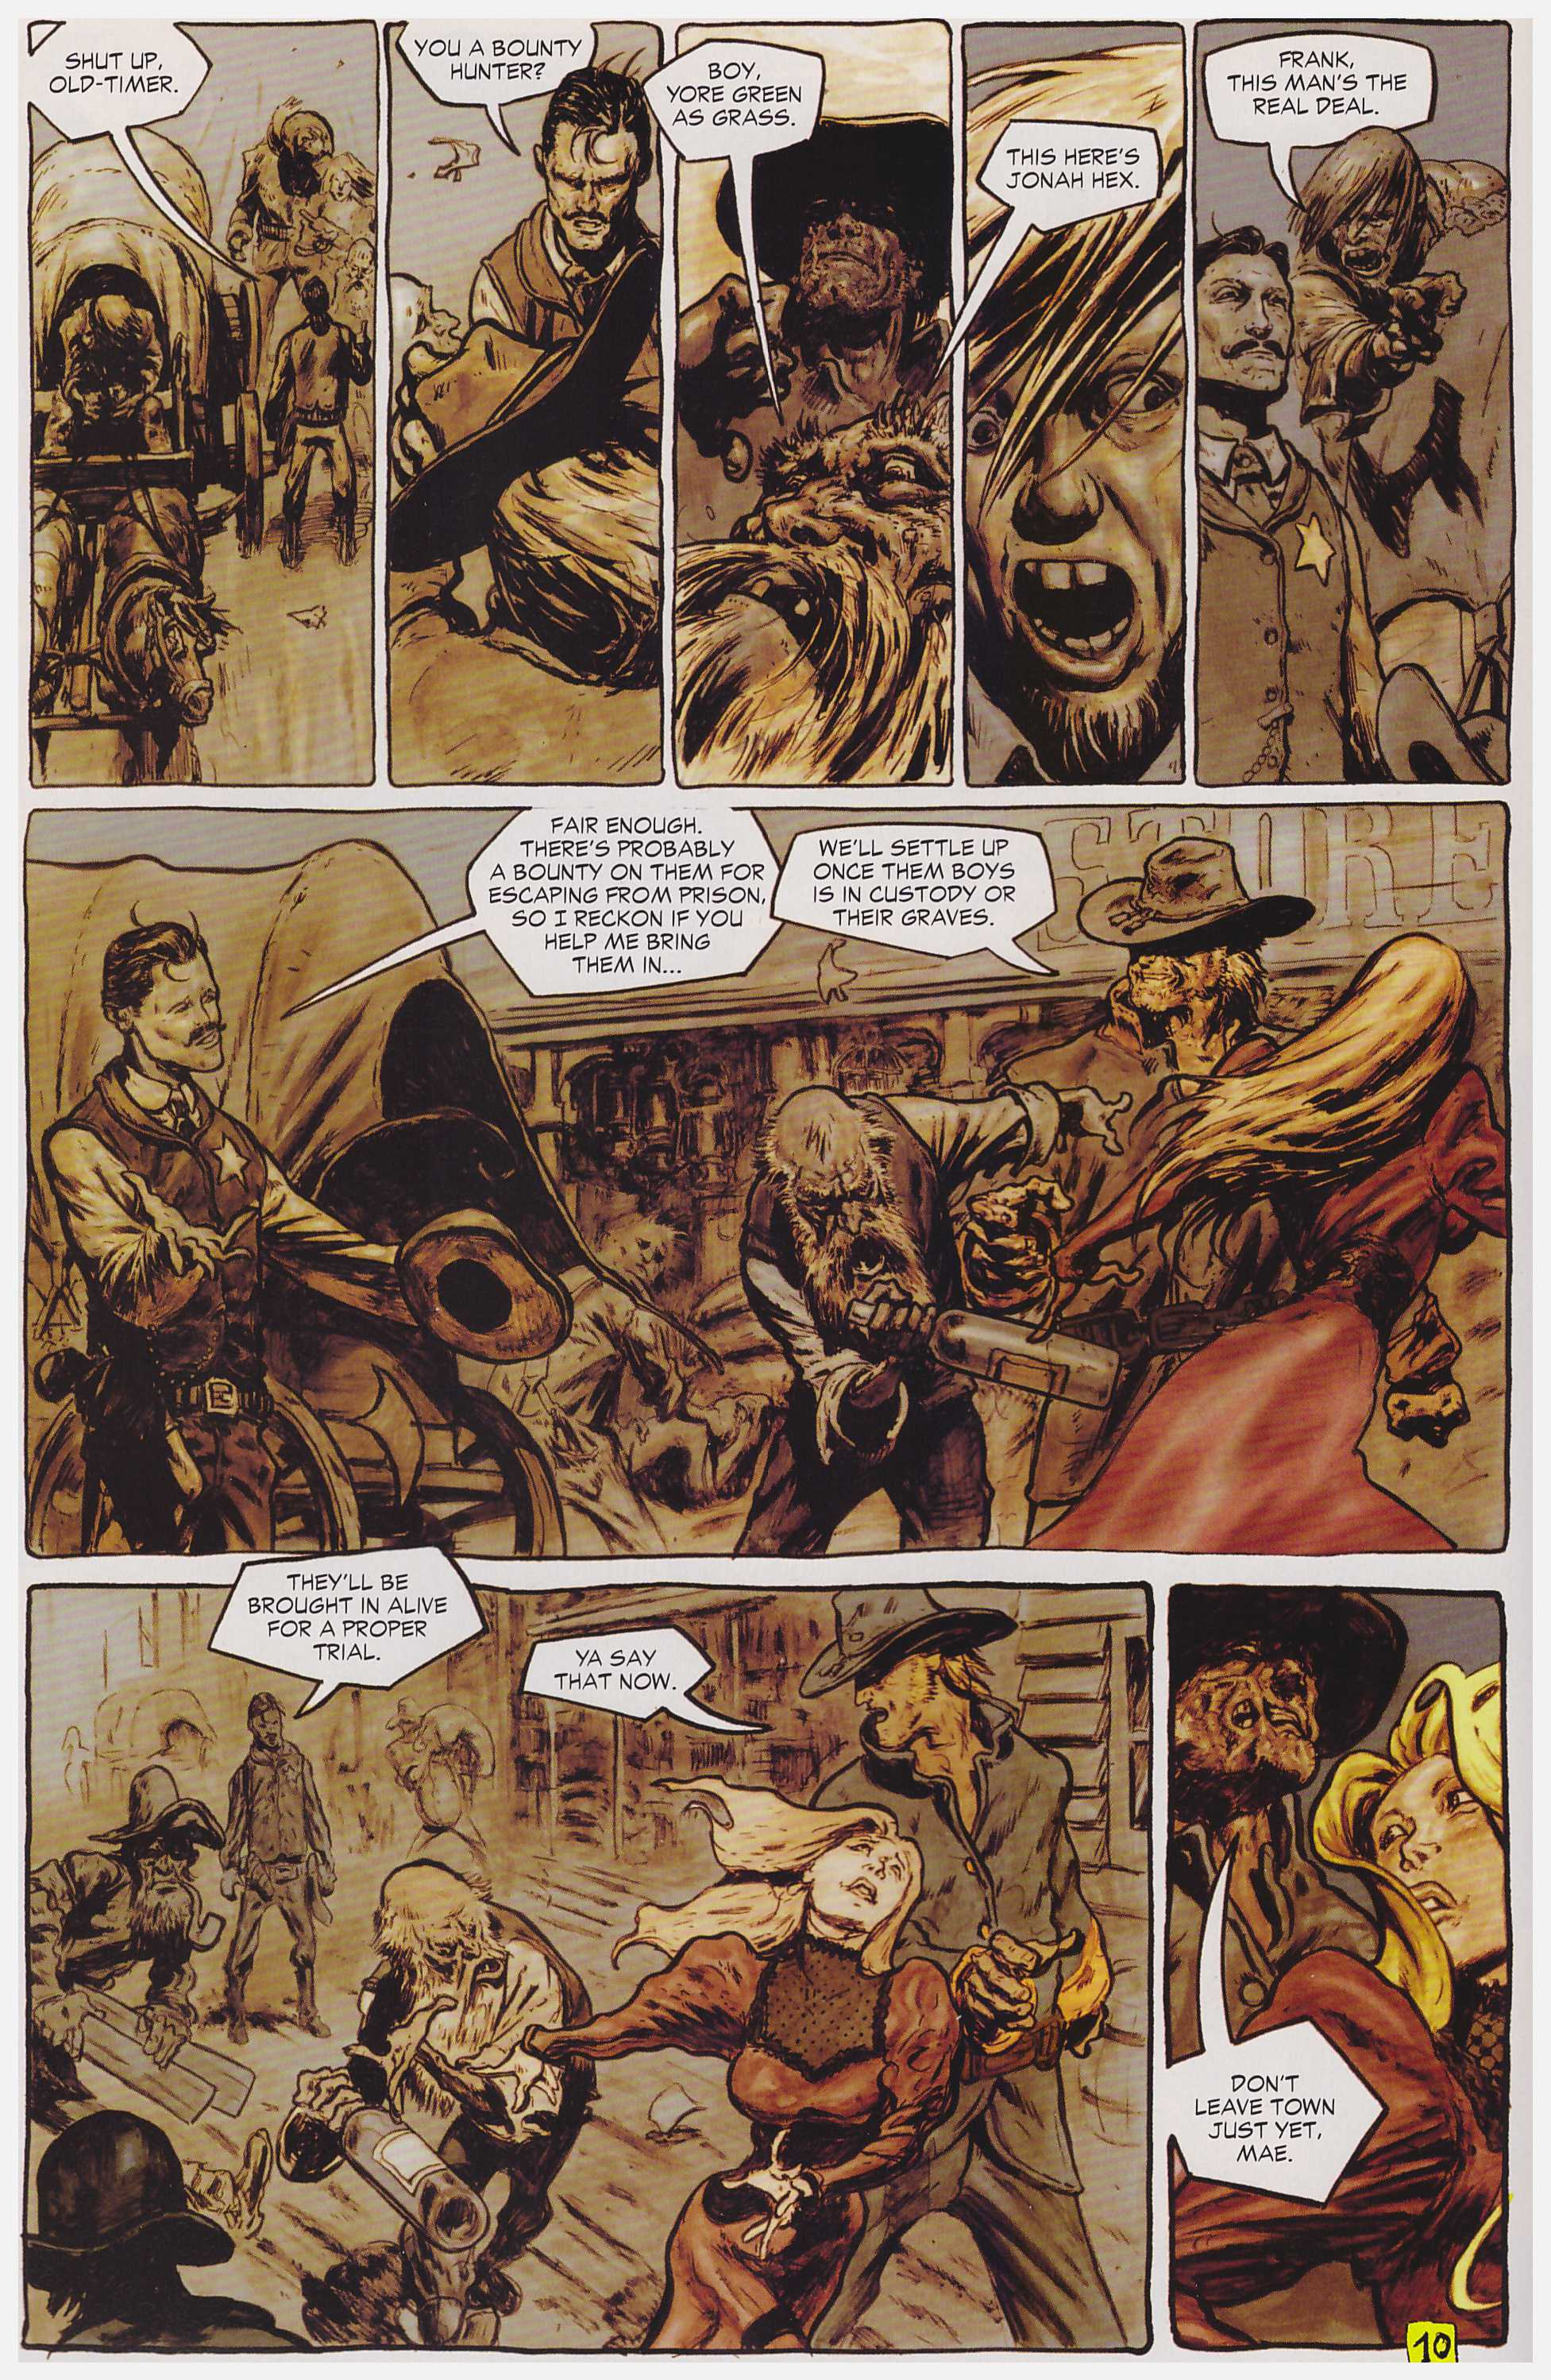 Jonah Hex Lead Poisoining review